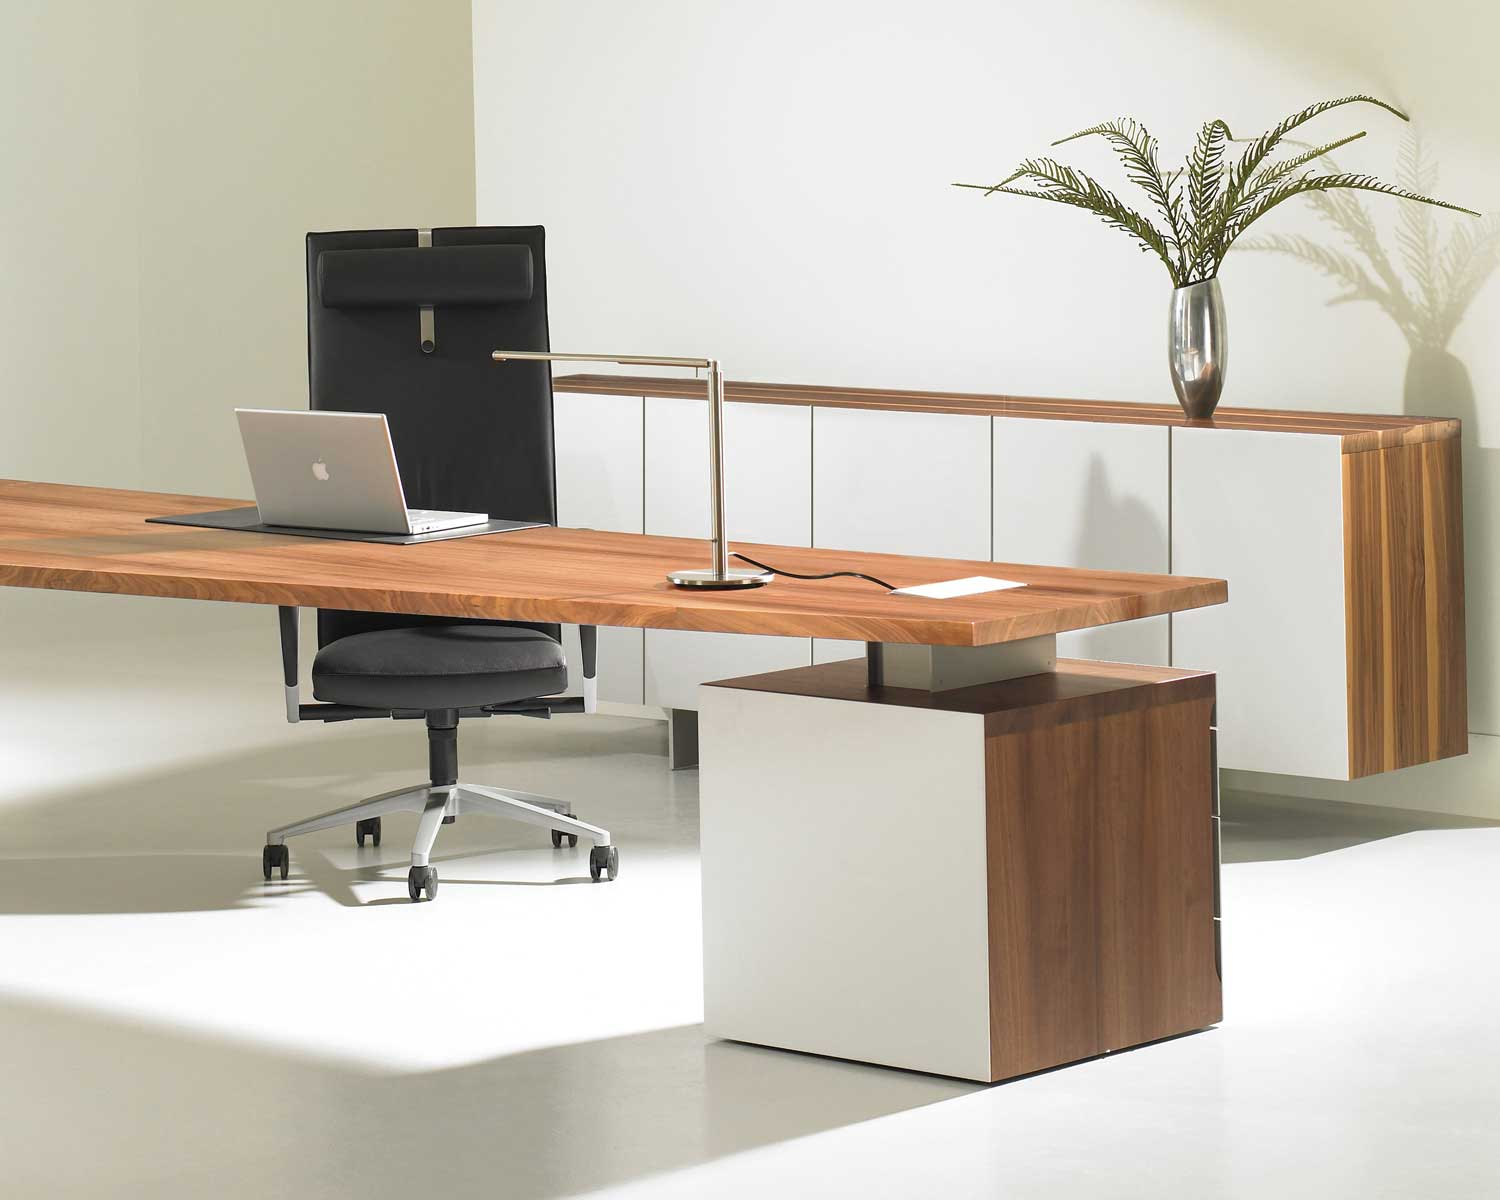 Comfortable office furniture vision office interiors - Office furnitur ...